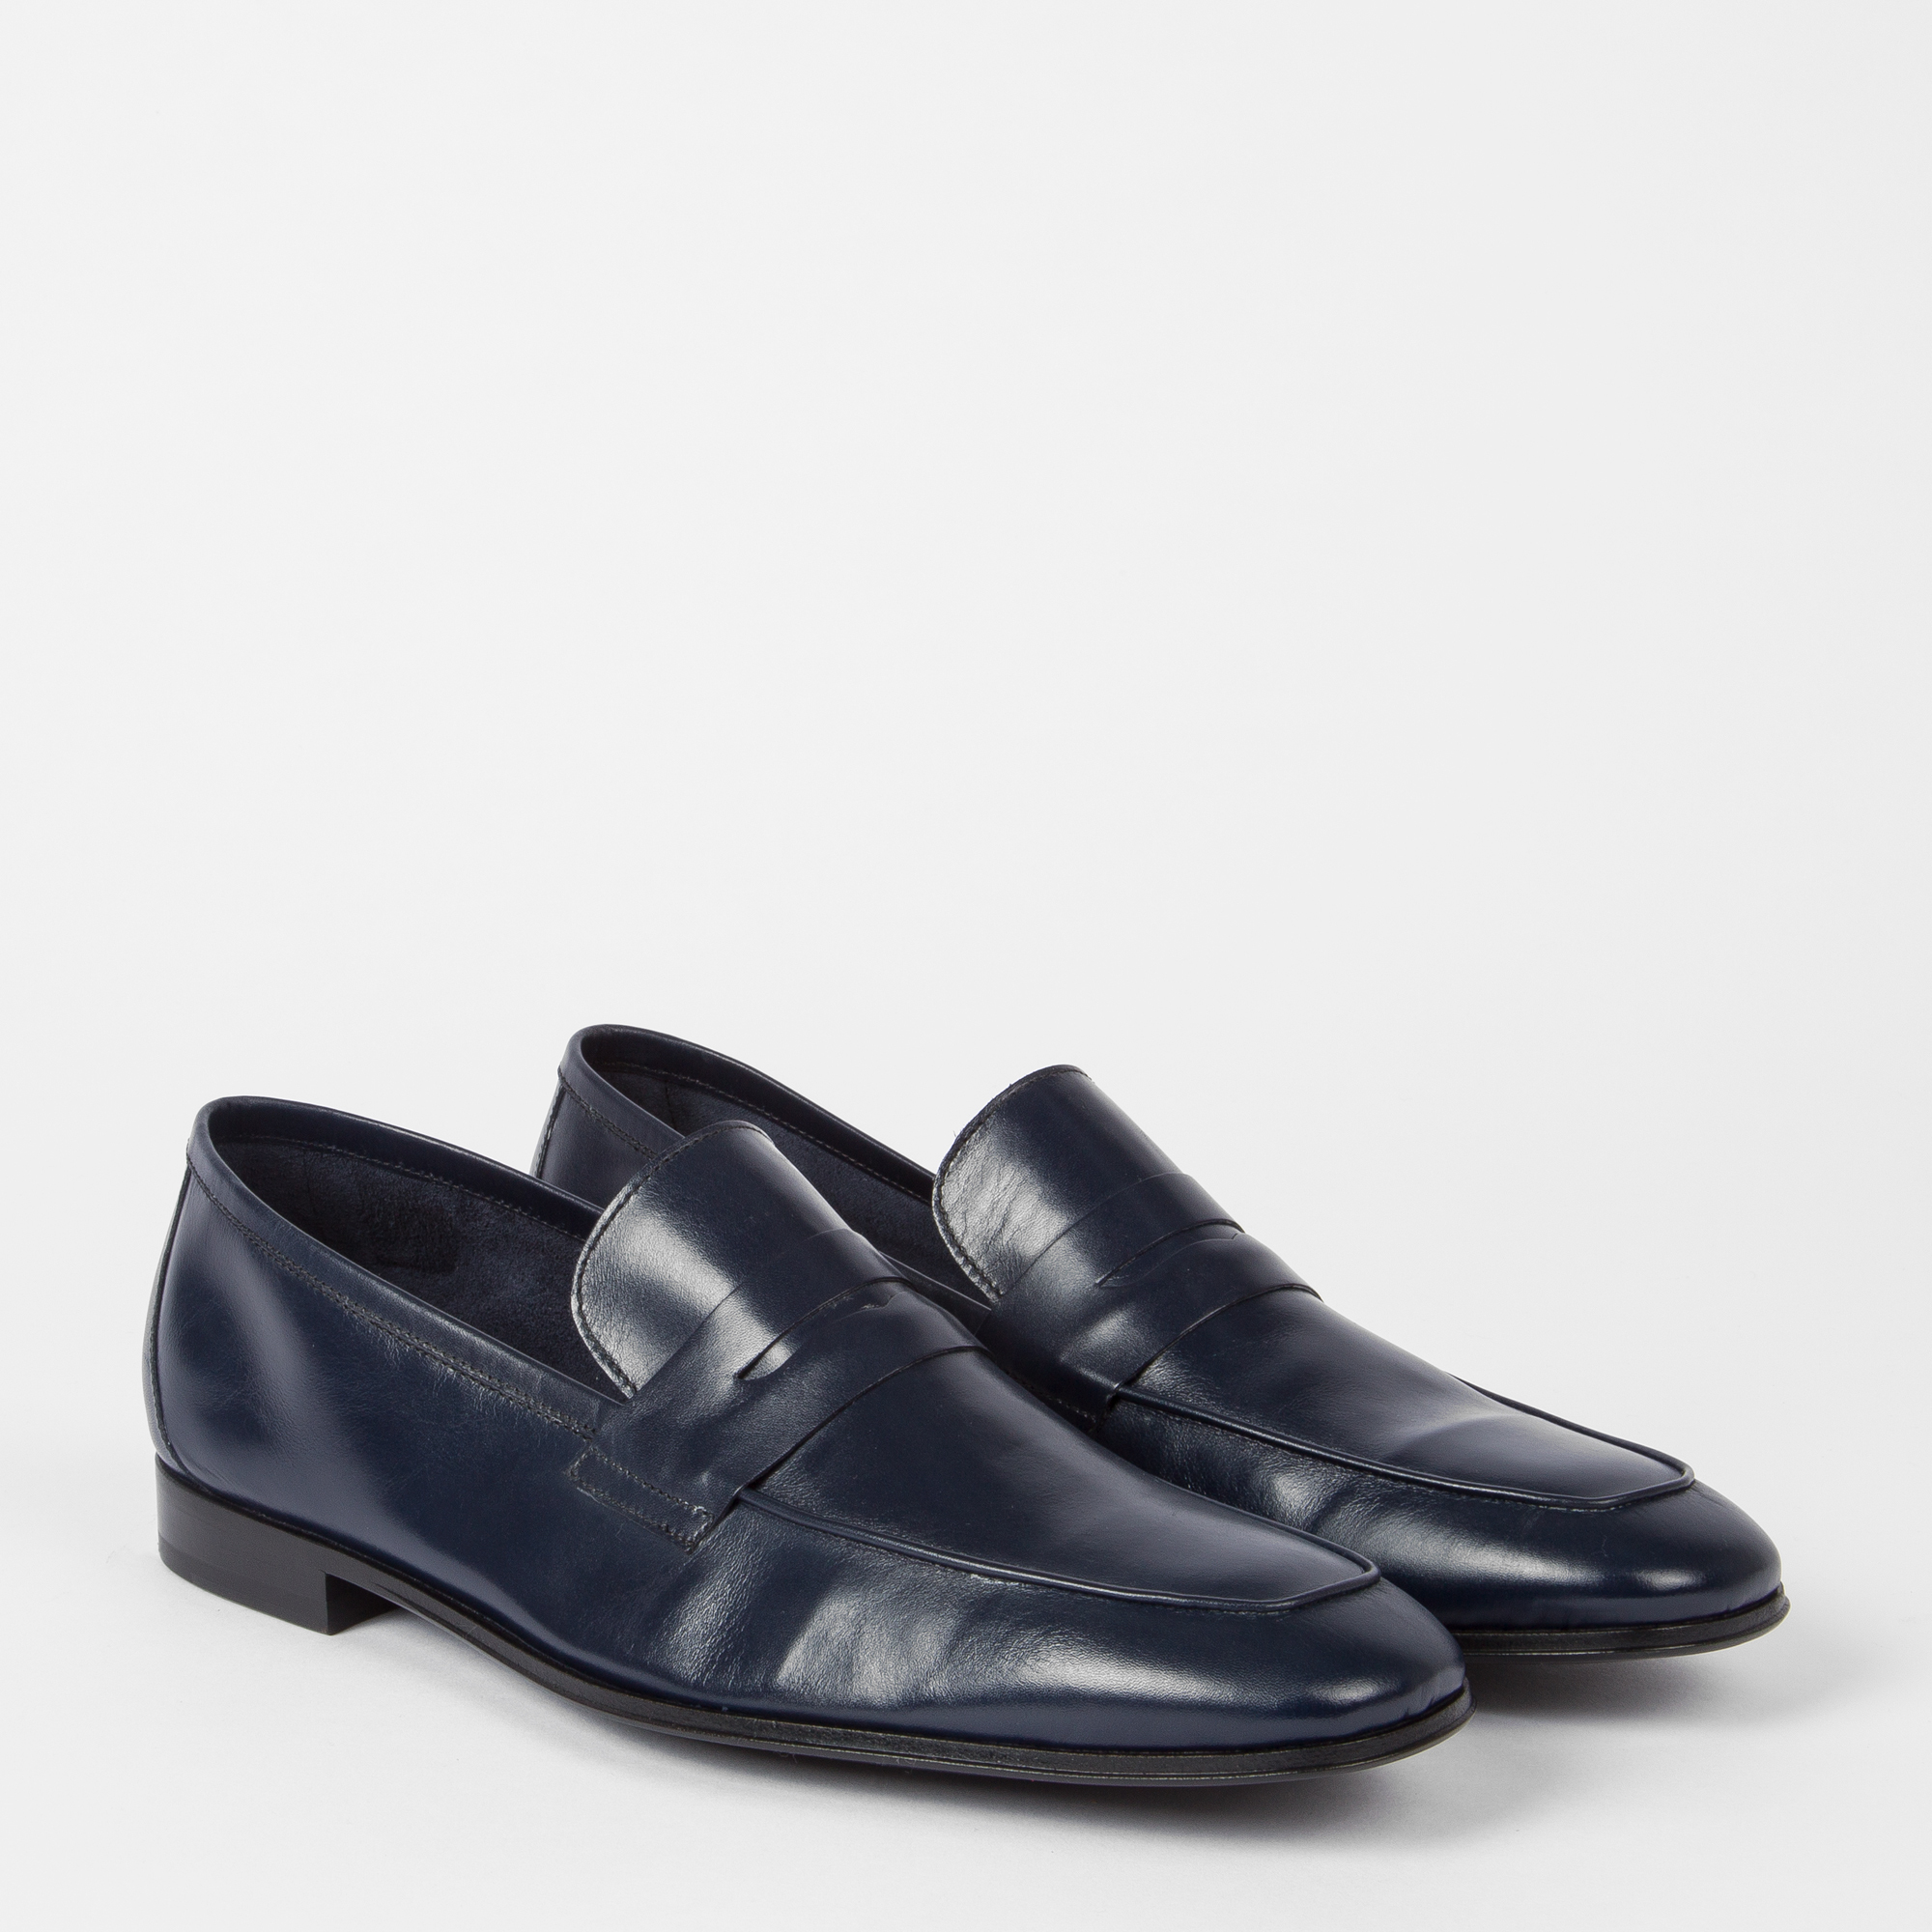 9e6321d16e1 Men s Navy Leather  Glynn  Penny Loafers ... — Thread